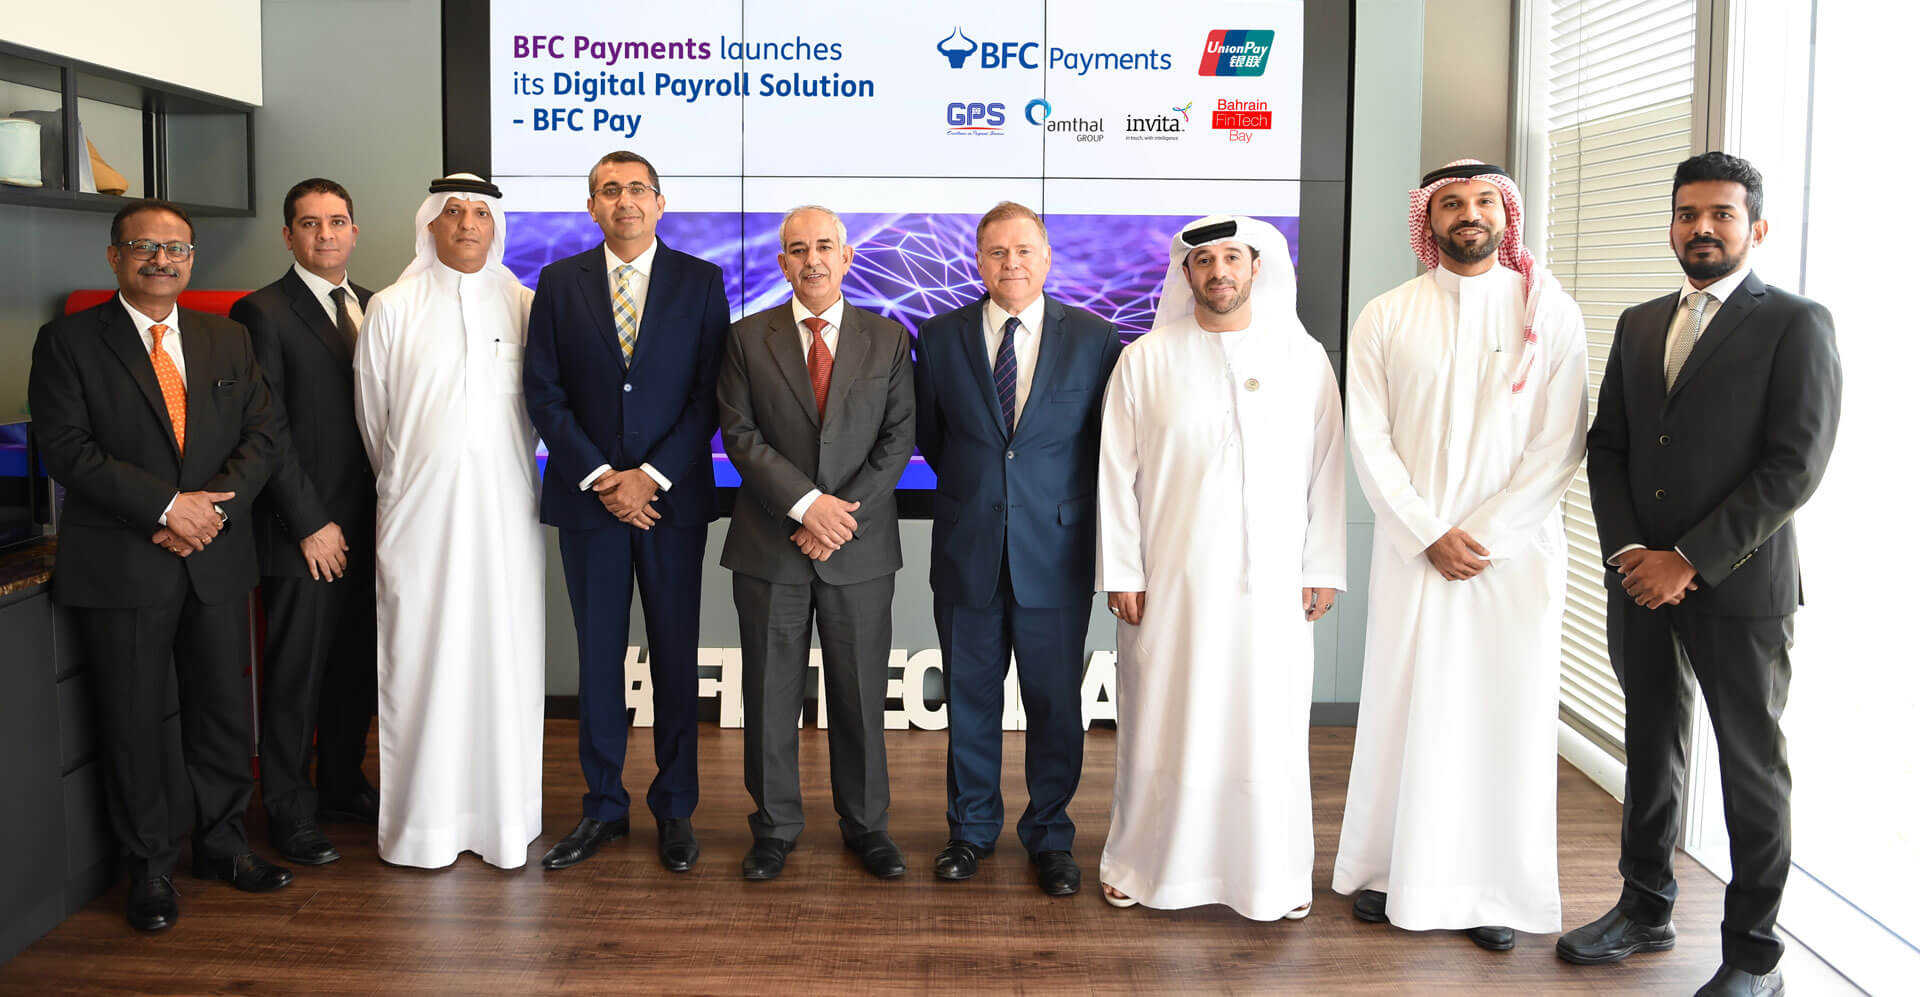 BFC Payments partners with UnionPay International to launch digital payments solution that promotes financial inclusion in Bahrain